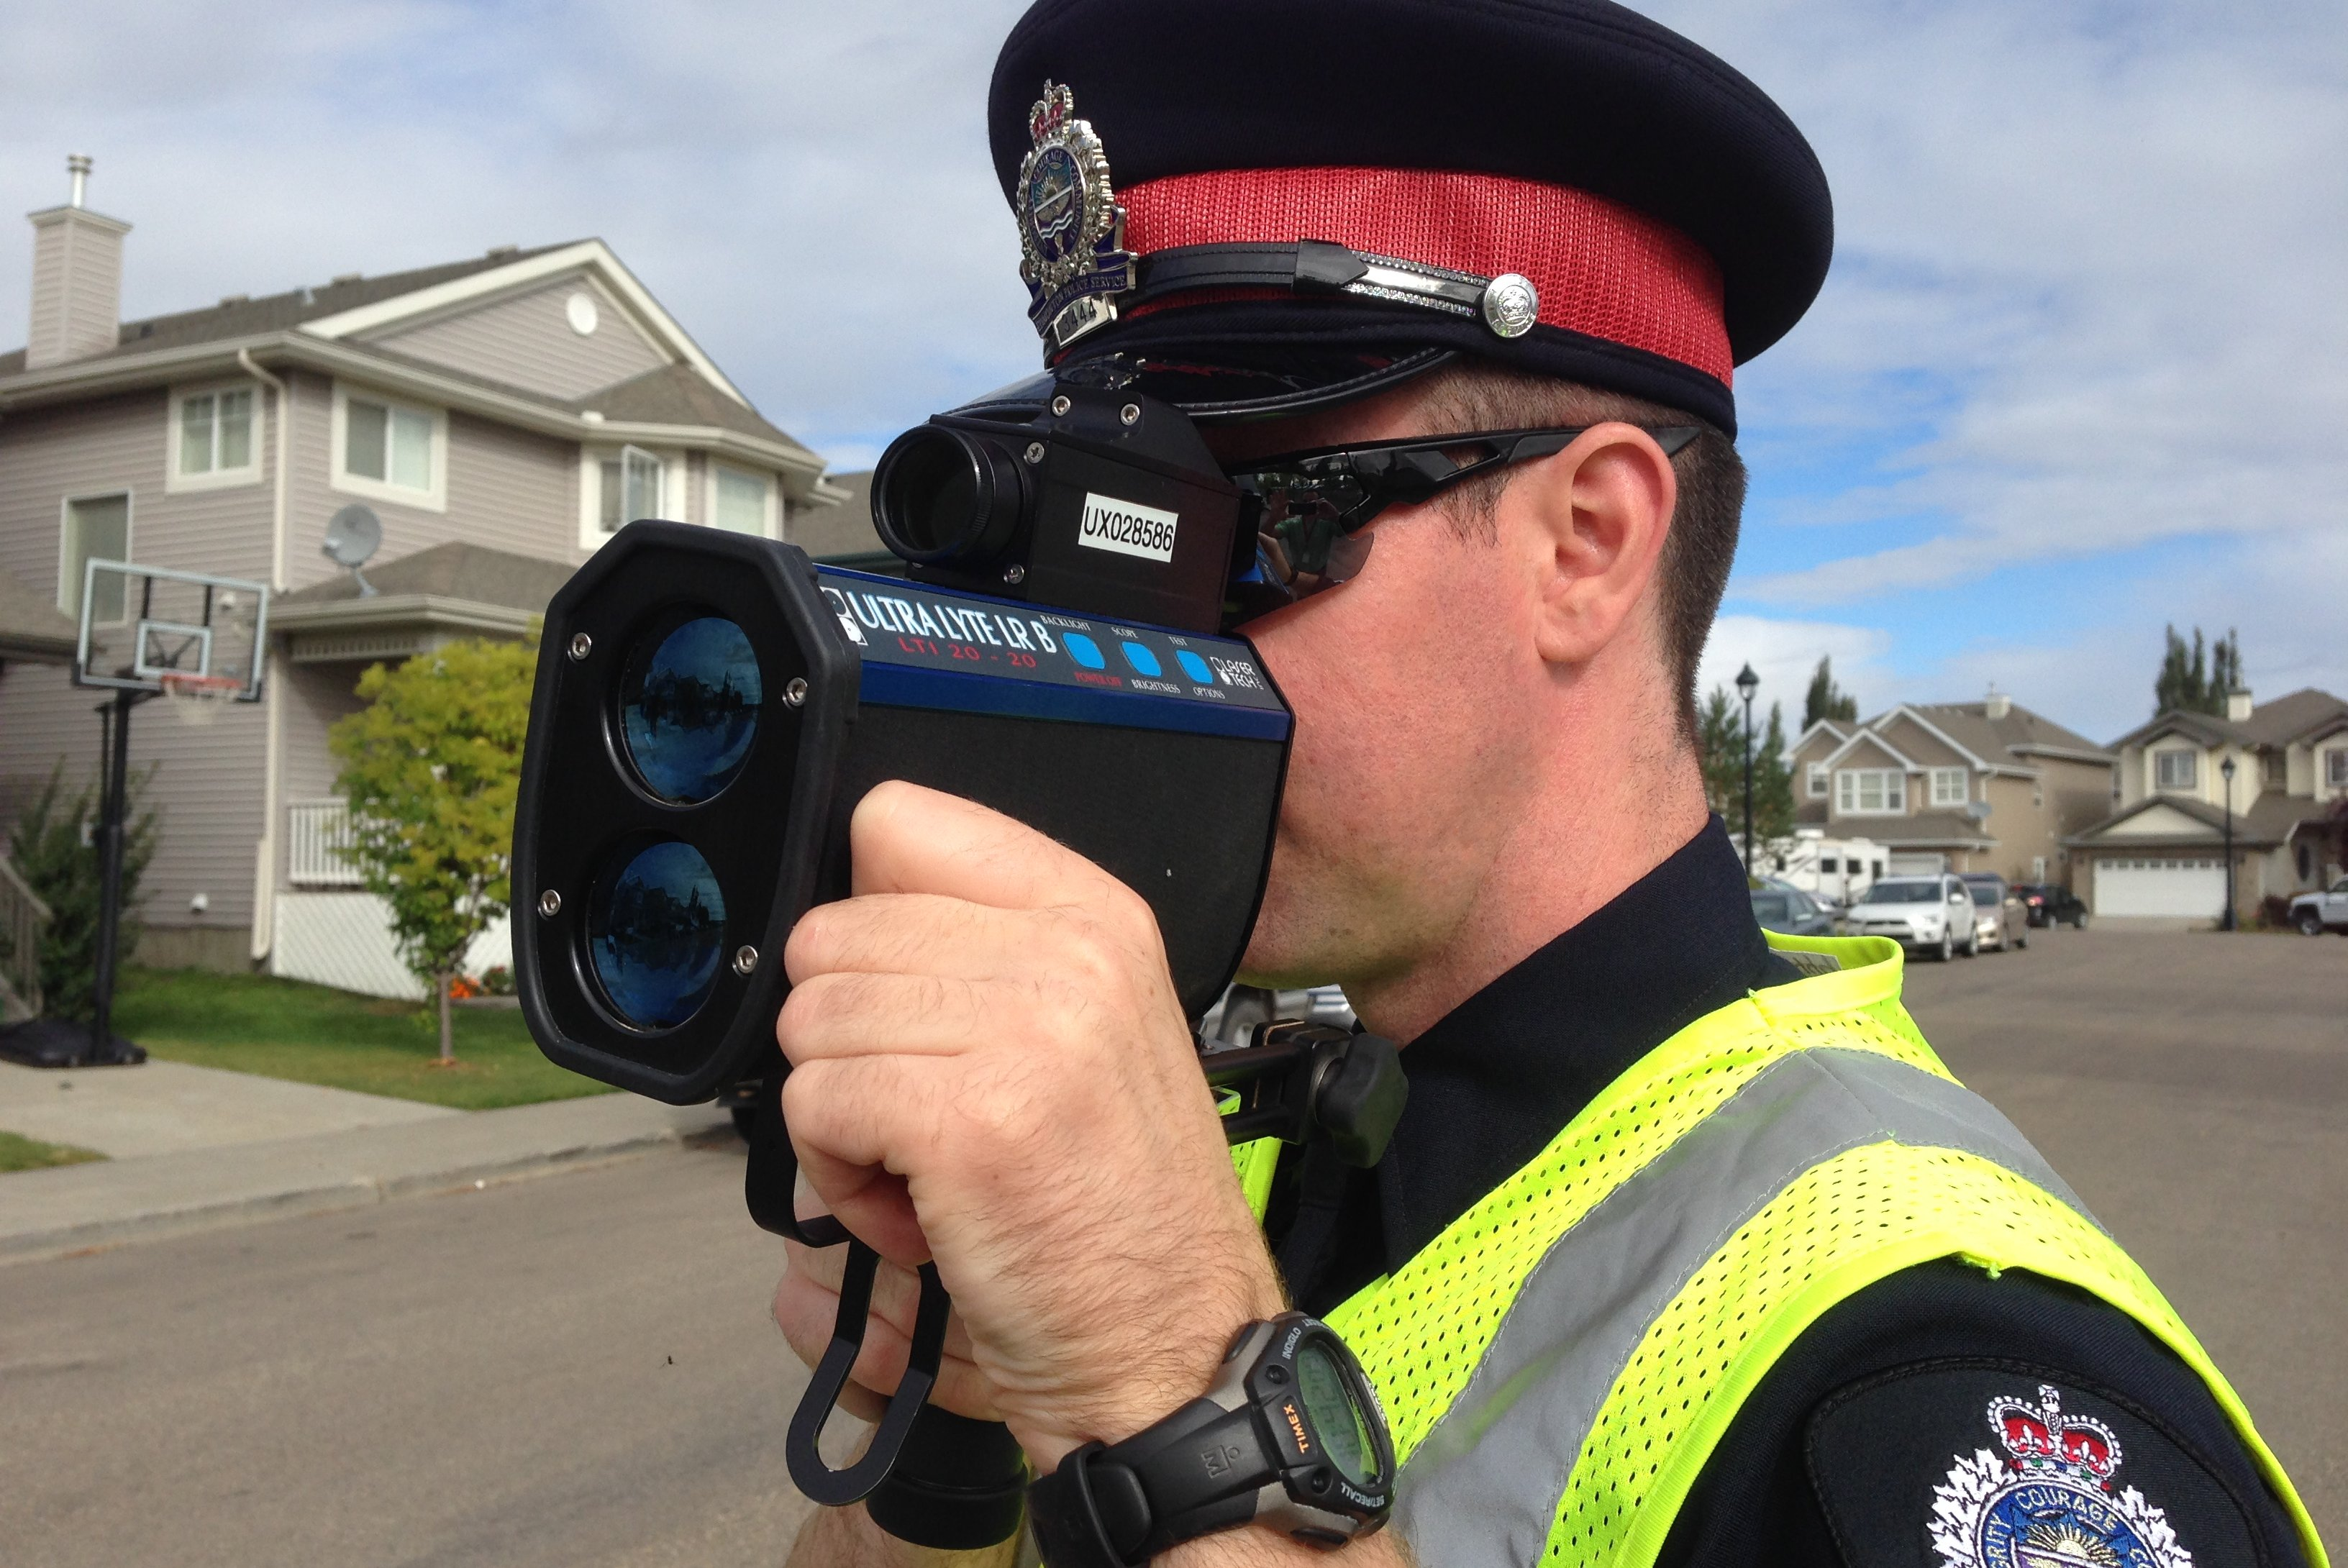 An Edmonton Police Service officer conducting photo radar speed enforcement.